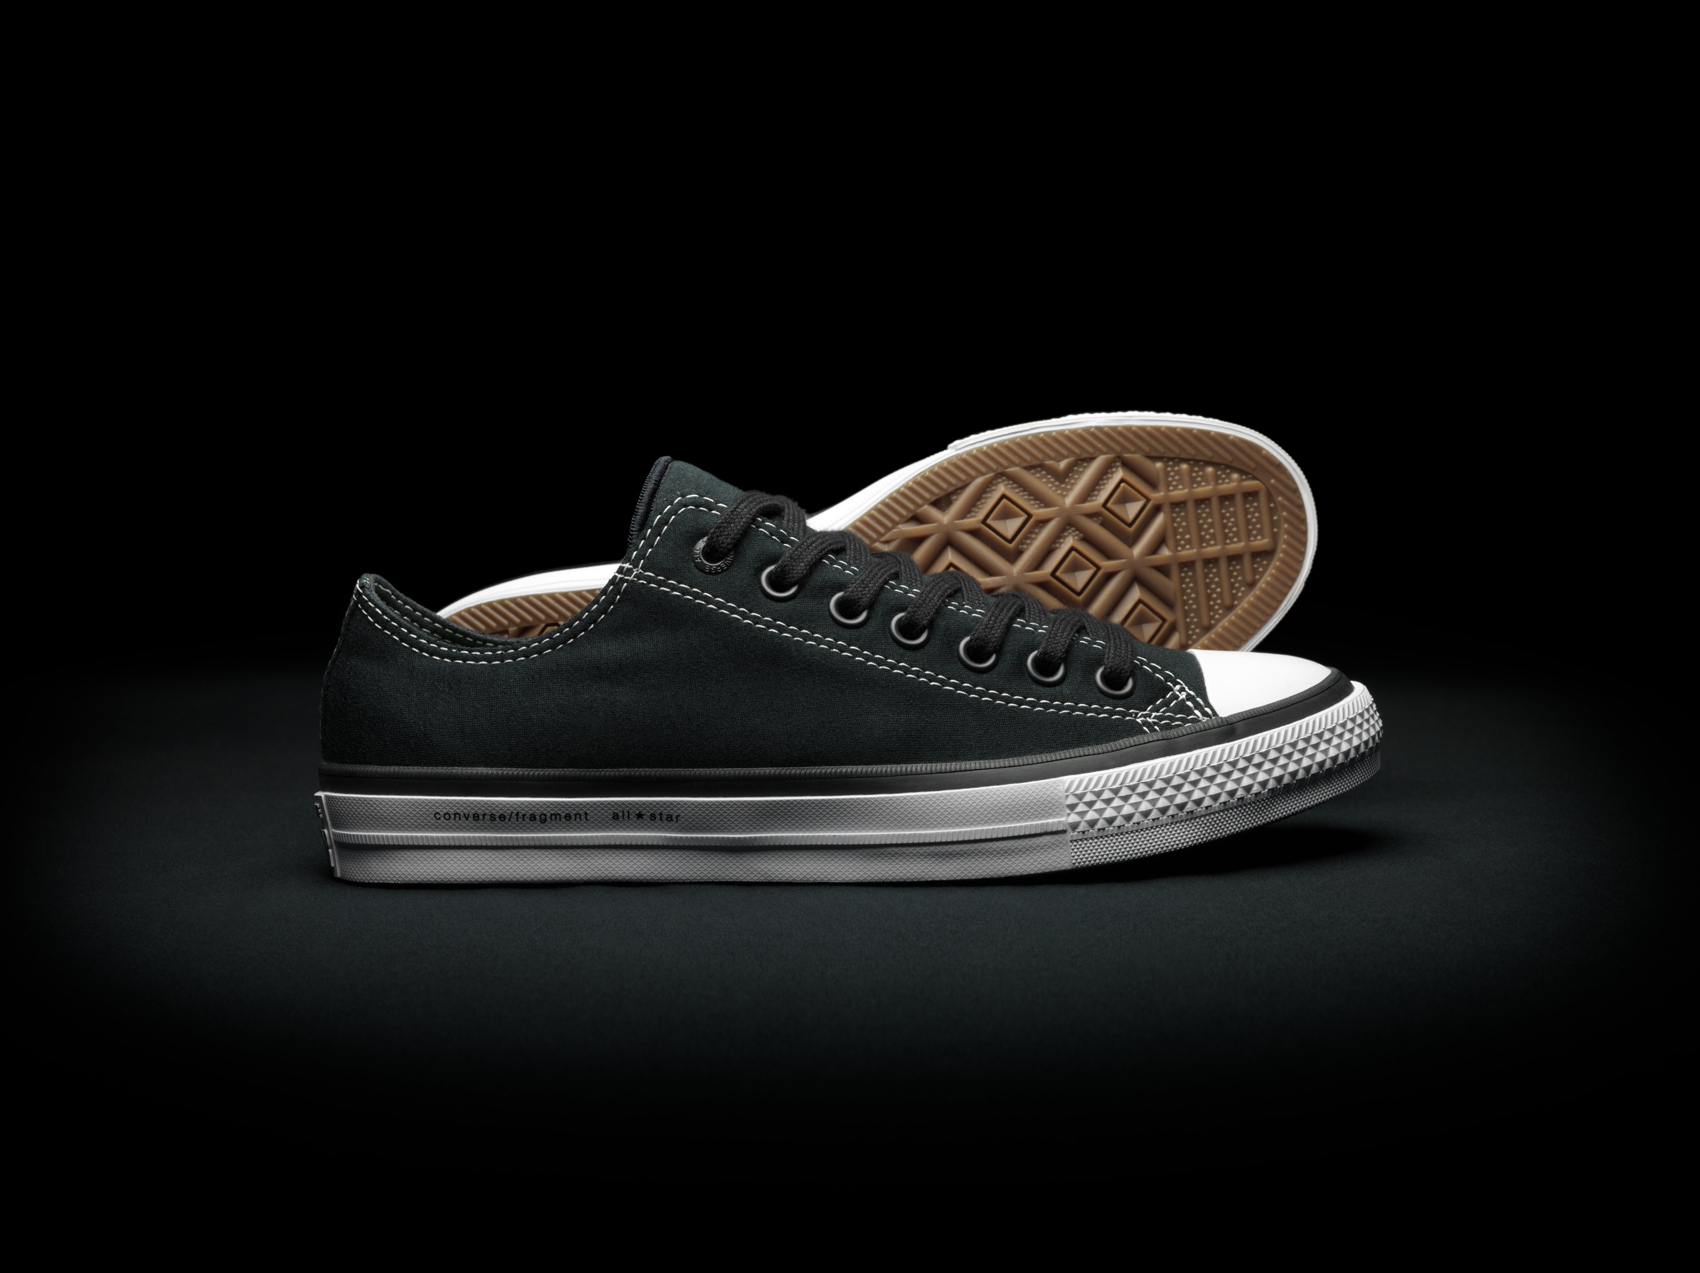 fragment-design-converse-all-star